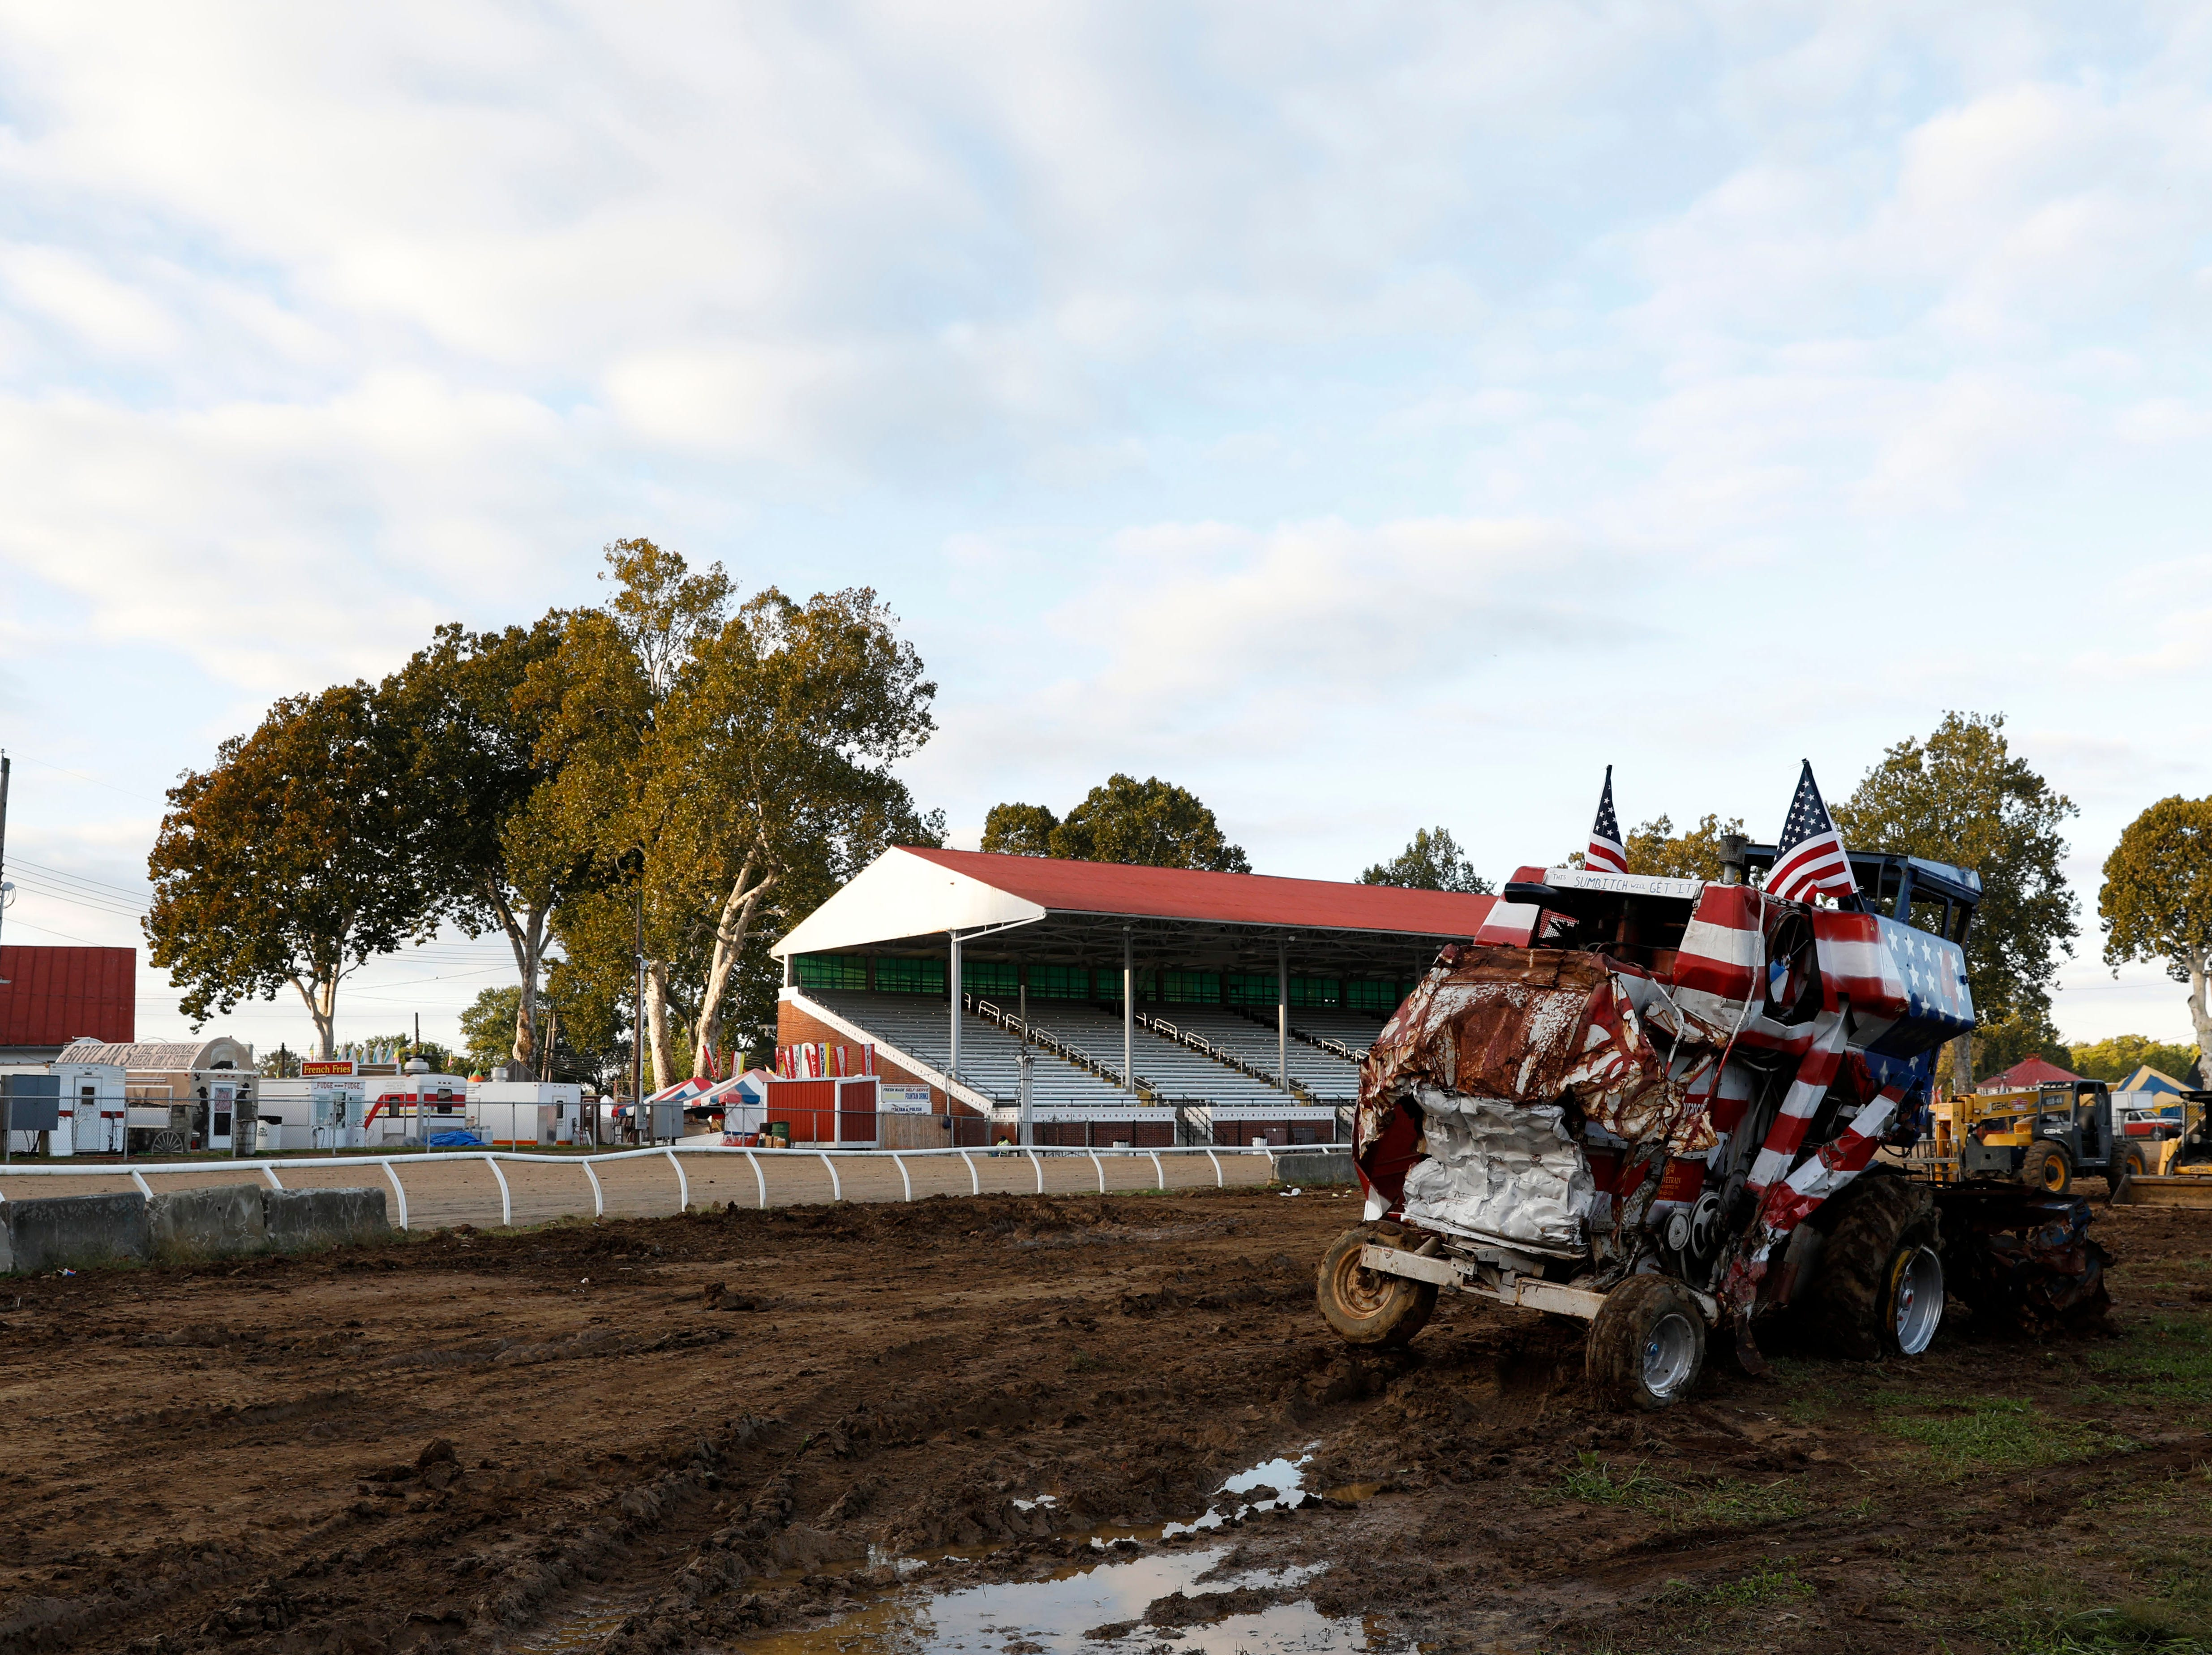 A combine that participated in Thursday night's combine demolition derby sits on the track at the Fairfield County Fairgrounds Friday morning, Oct. 12, 2018, in Lancaster.